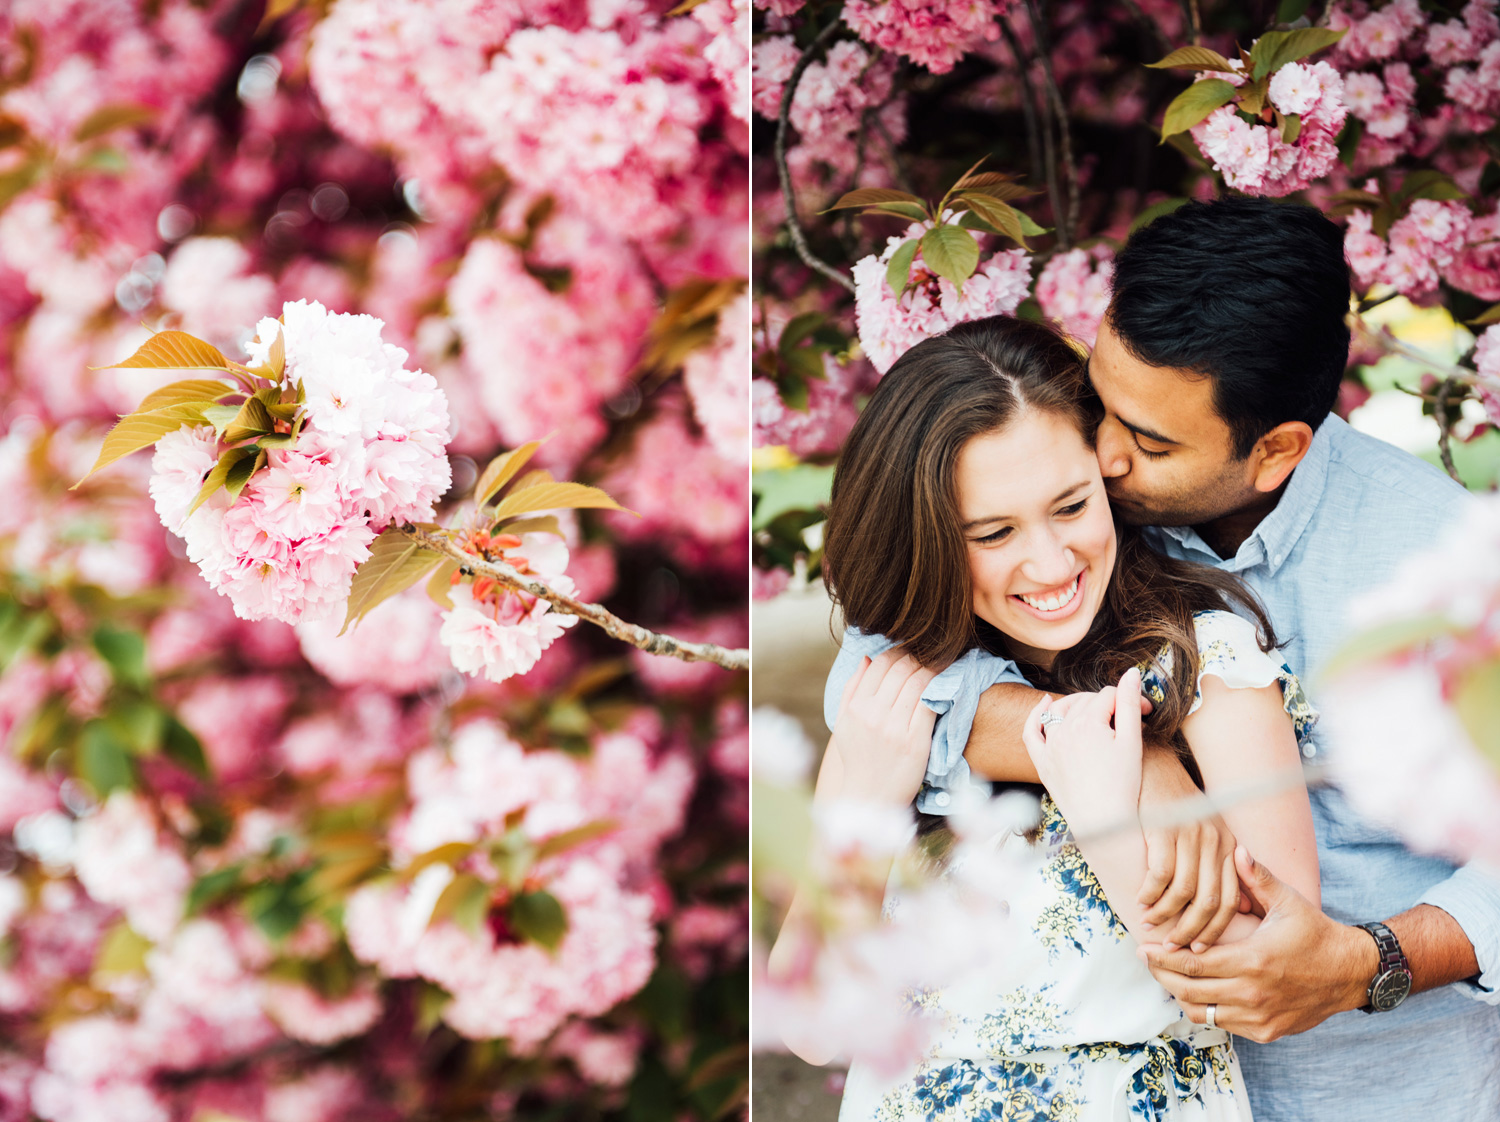 035-cherry-blossom-portrait-session-in-paris-france.jpg